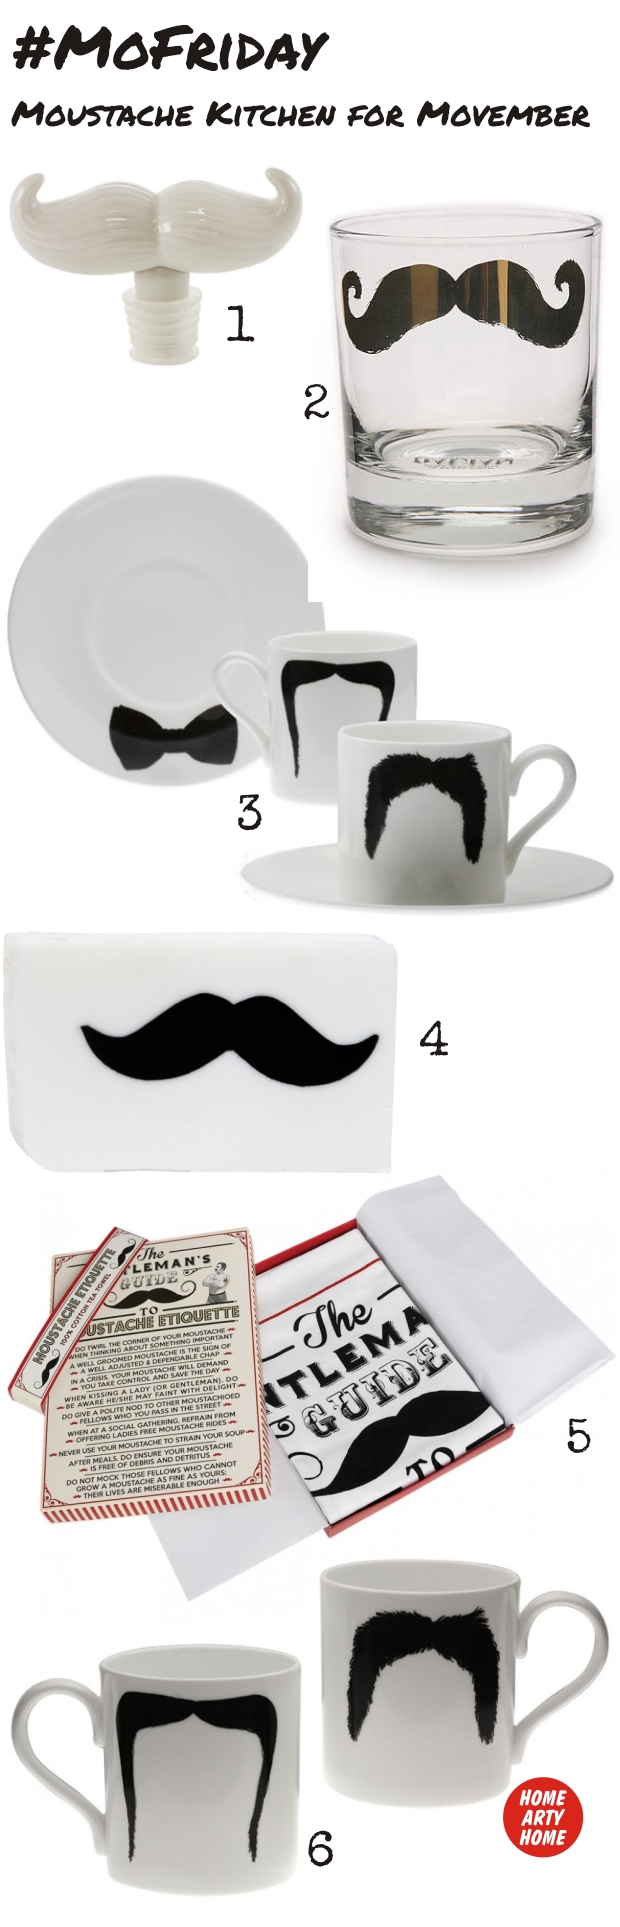 MoFriday Movember Moustache Kitchen homeartyhome